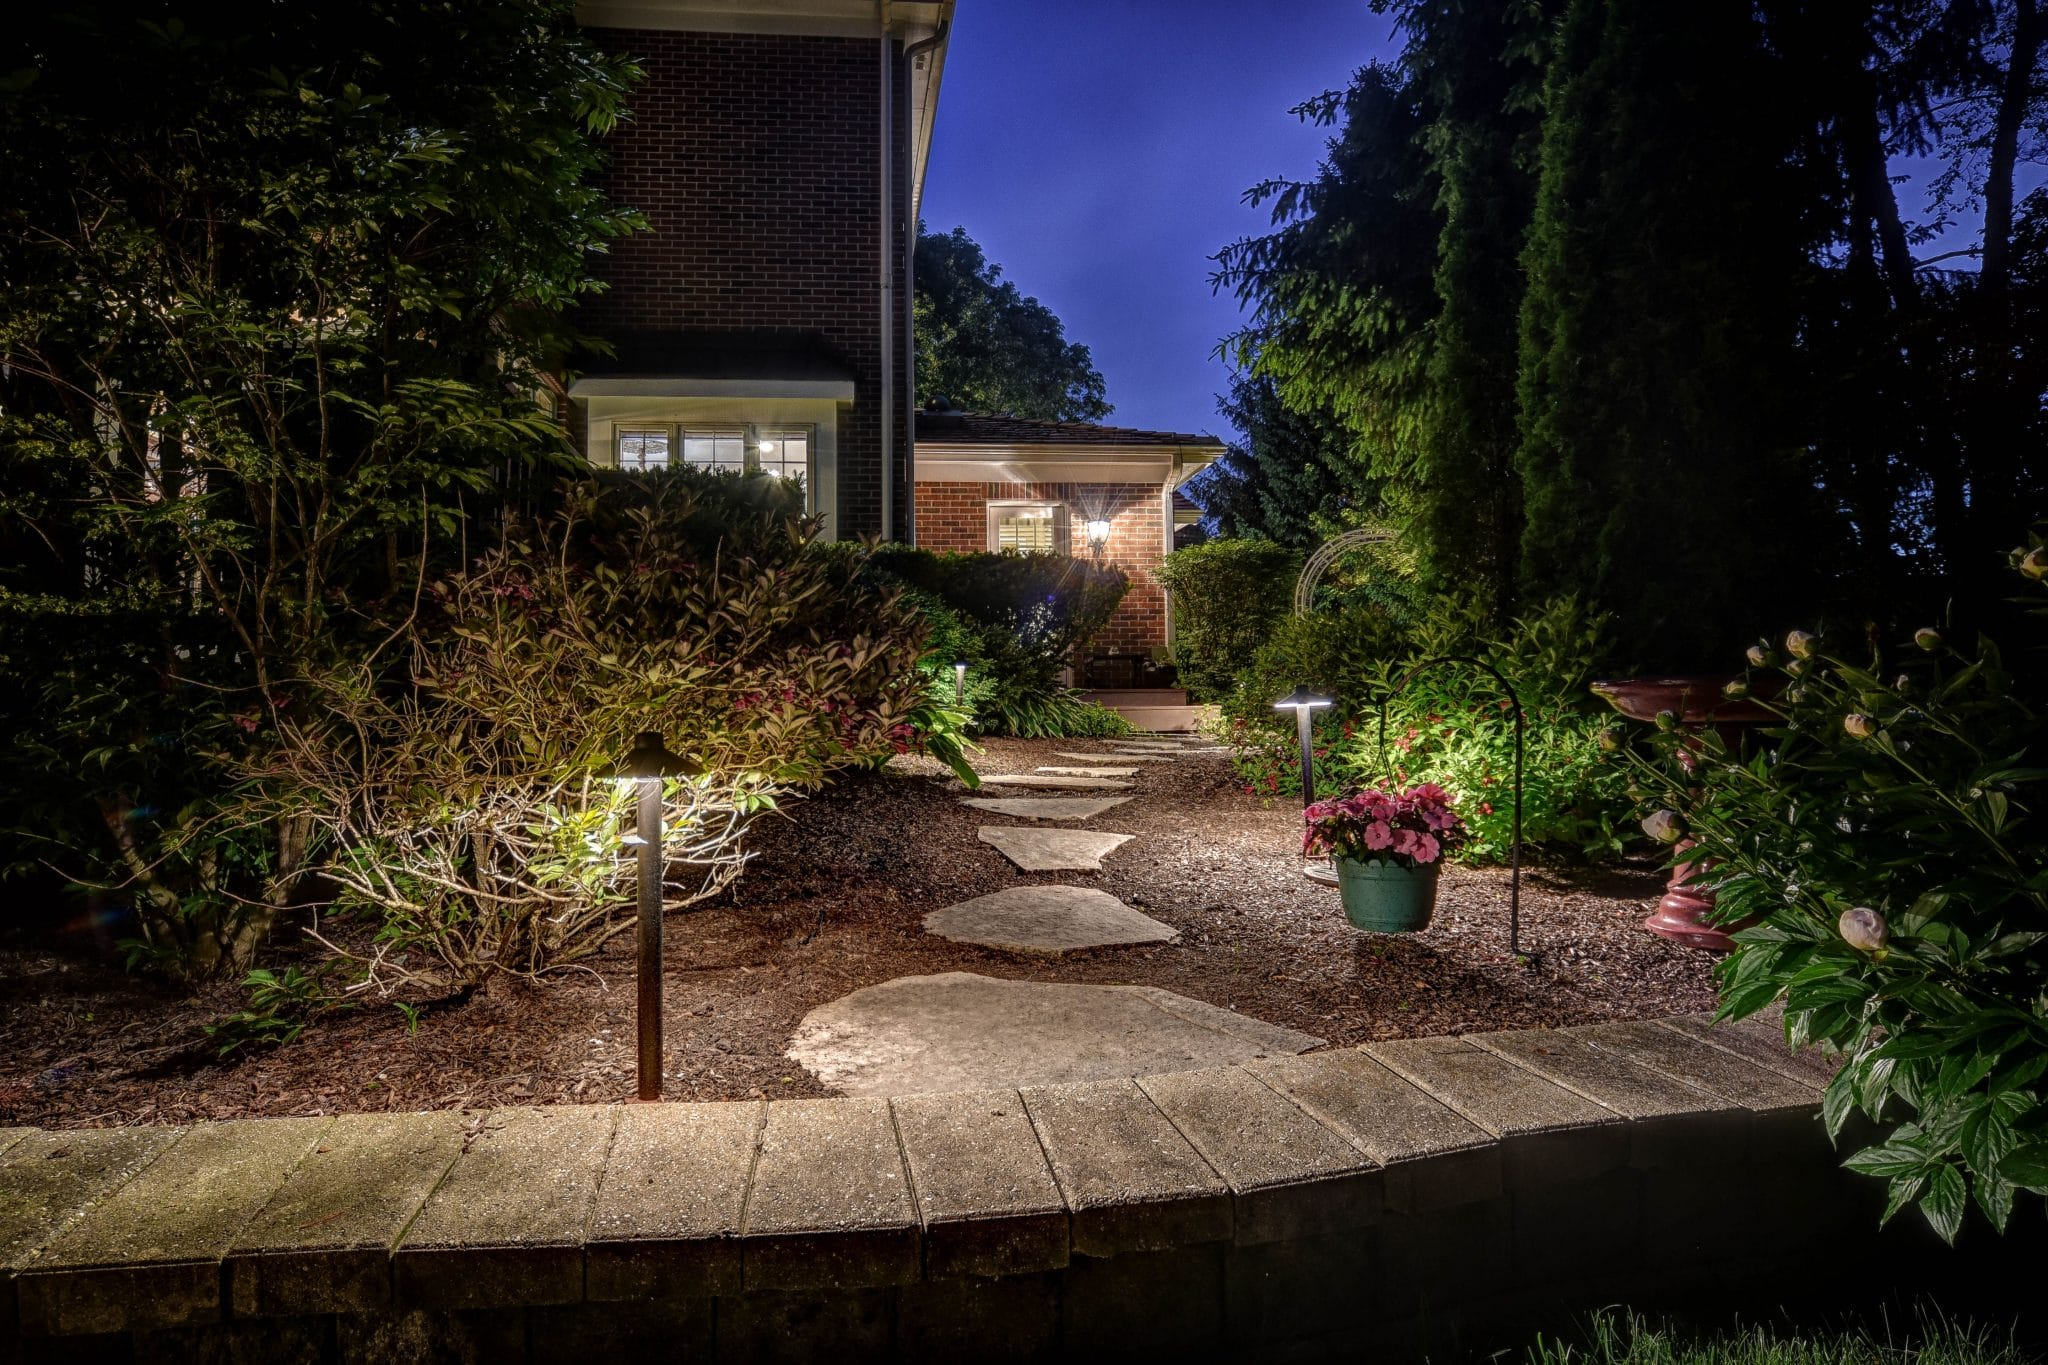 landscape lighting in glenview il, mikes landscape lighting, outdoor lighting in glenview